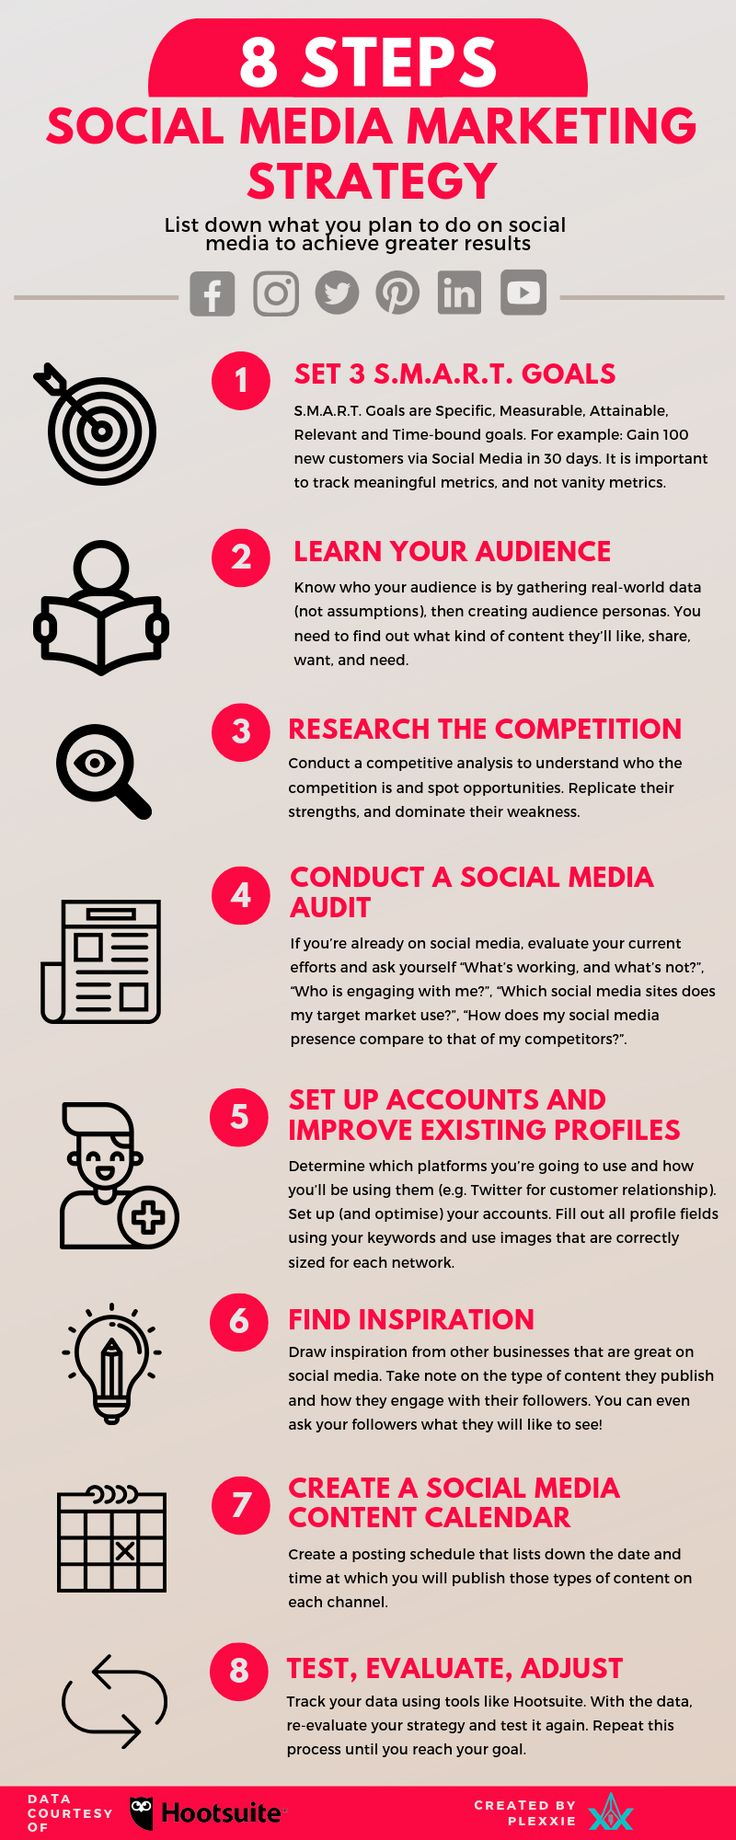 8 Step Social Media Marketing Strategy to Make You Look Awesome Online